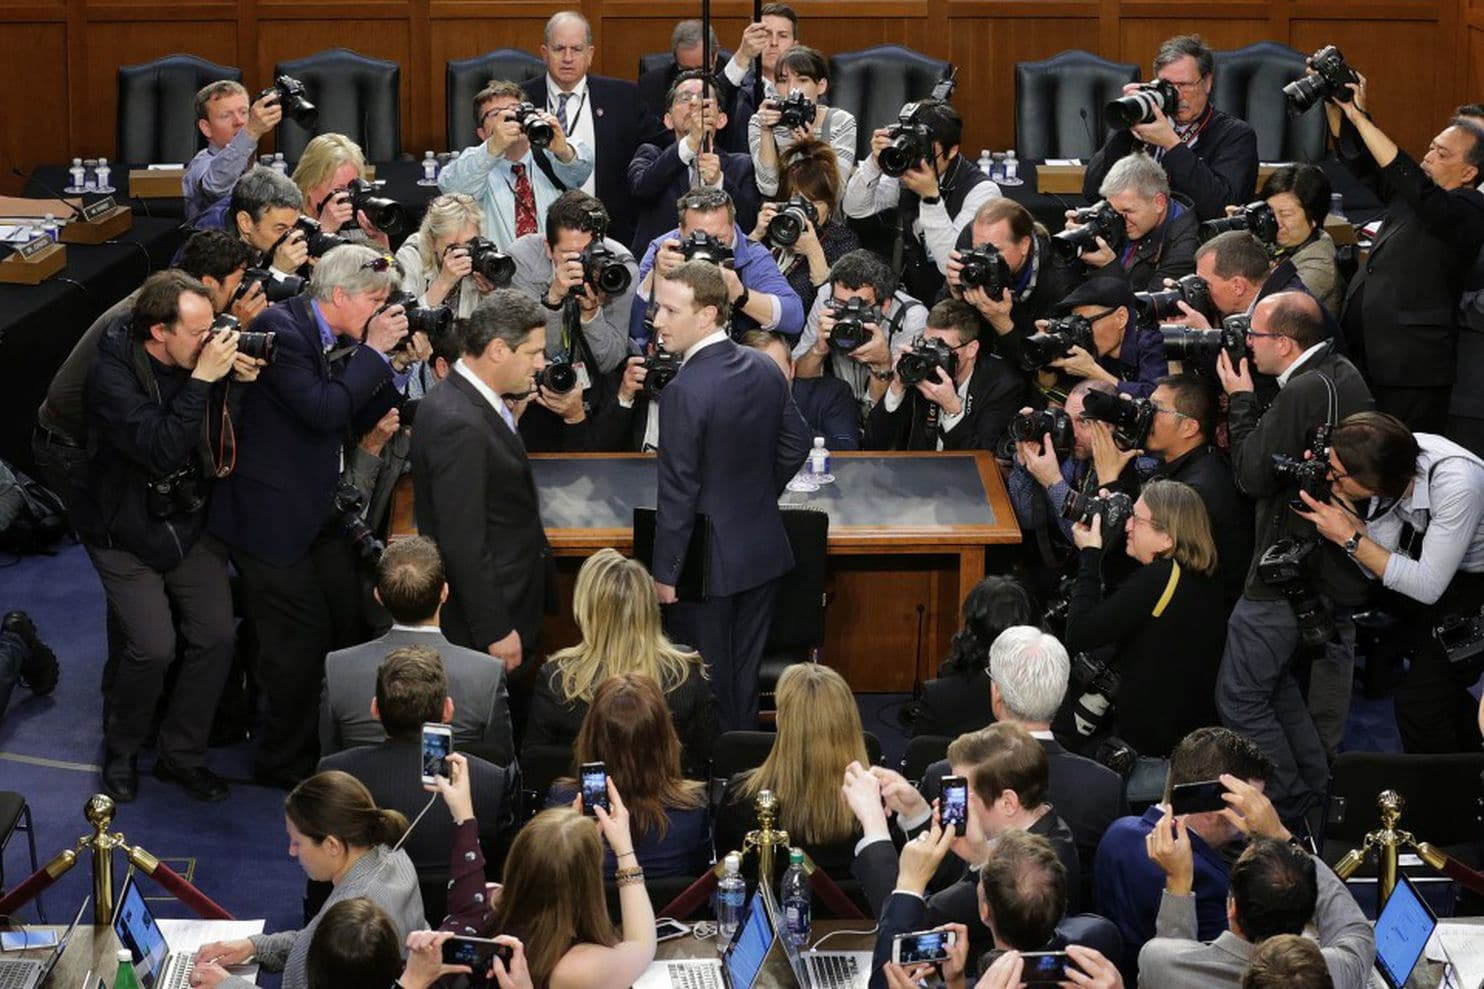 Facebook chief executive Mark Zuckerberg in a congressional hearing. Nguồn internet.